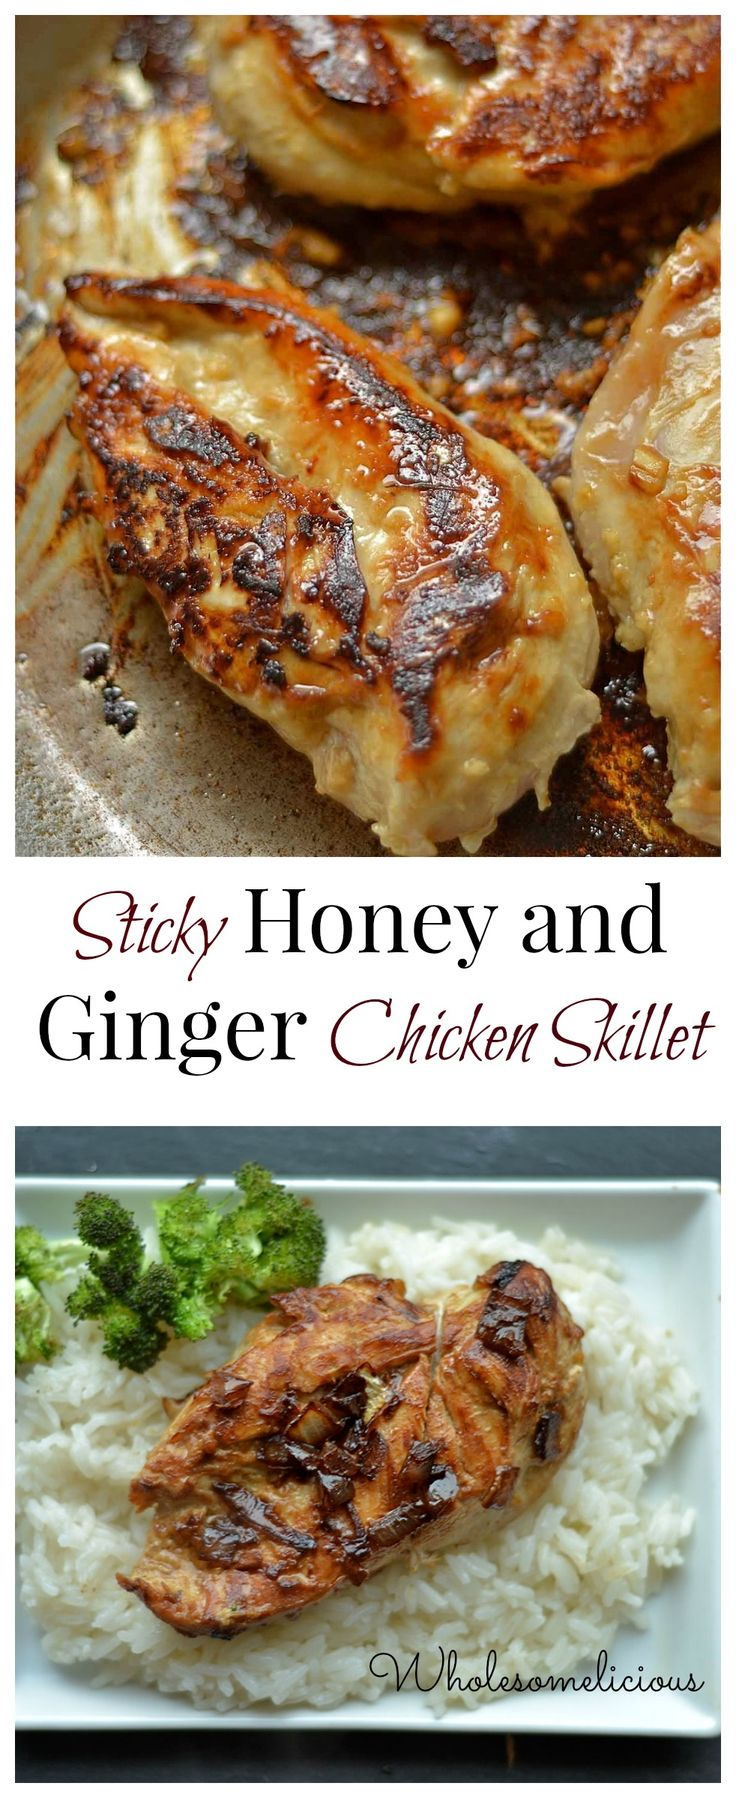 Skillet Roasted Chicken With Ginger And Soy Recipe — Dishmaps